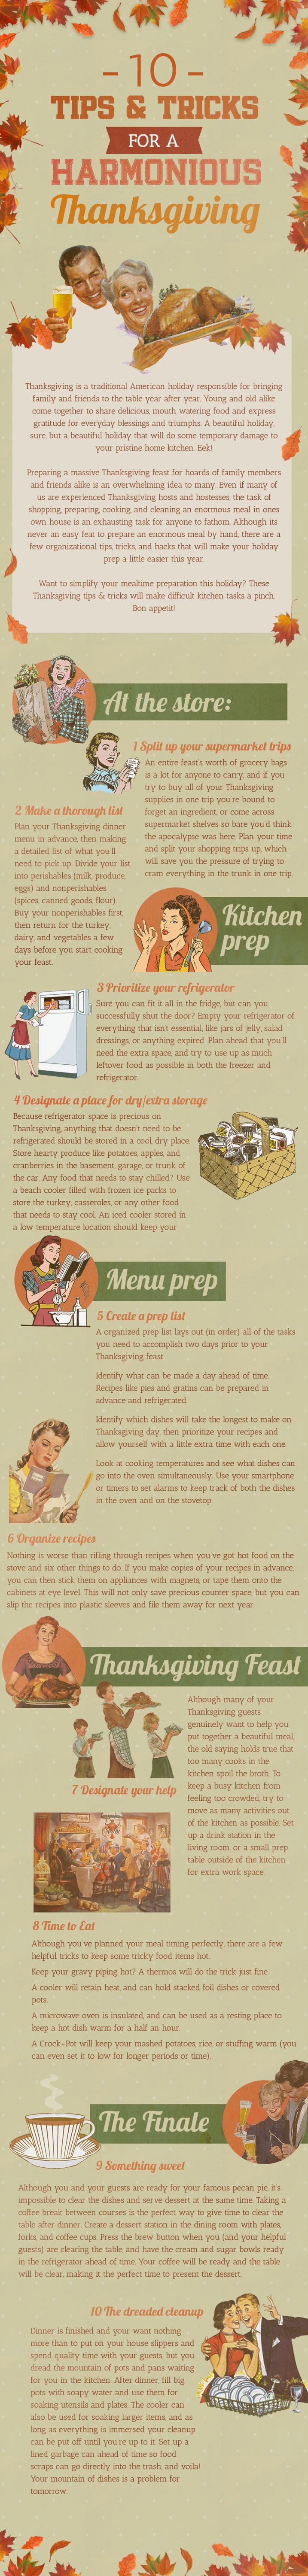 thanksgiving-infographic-1